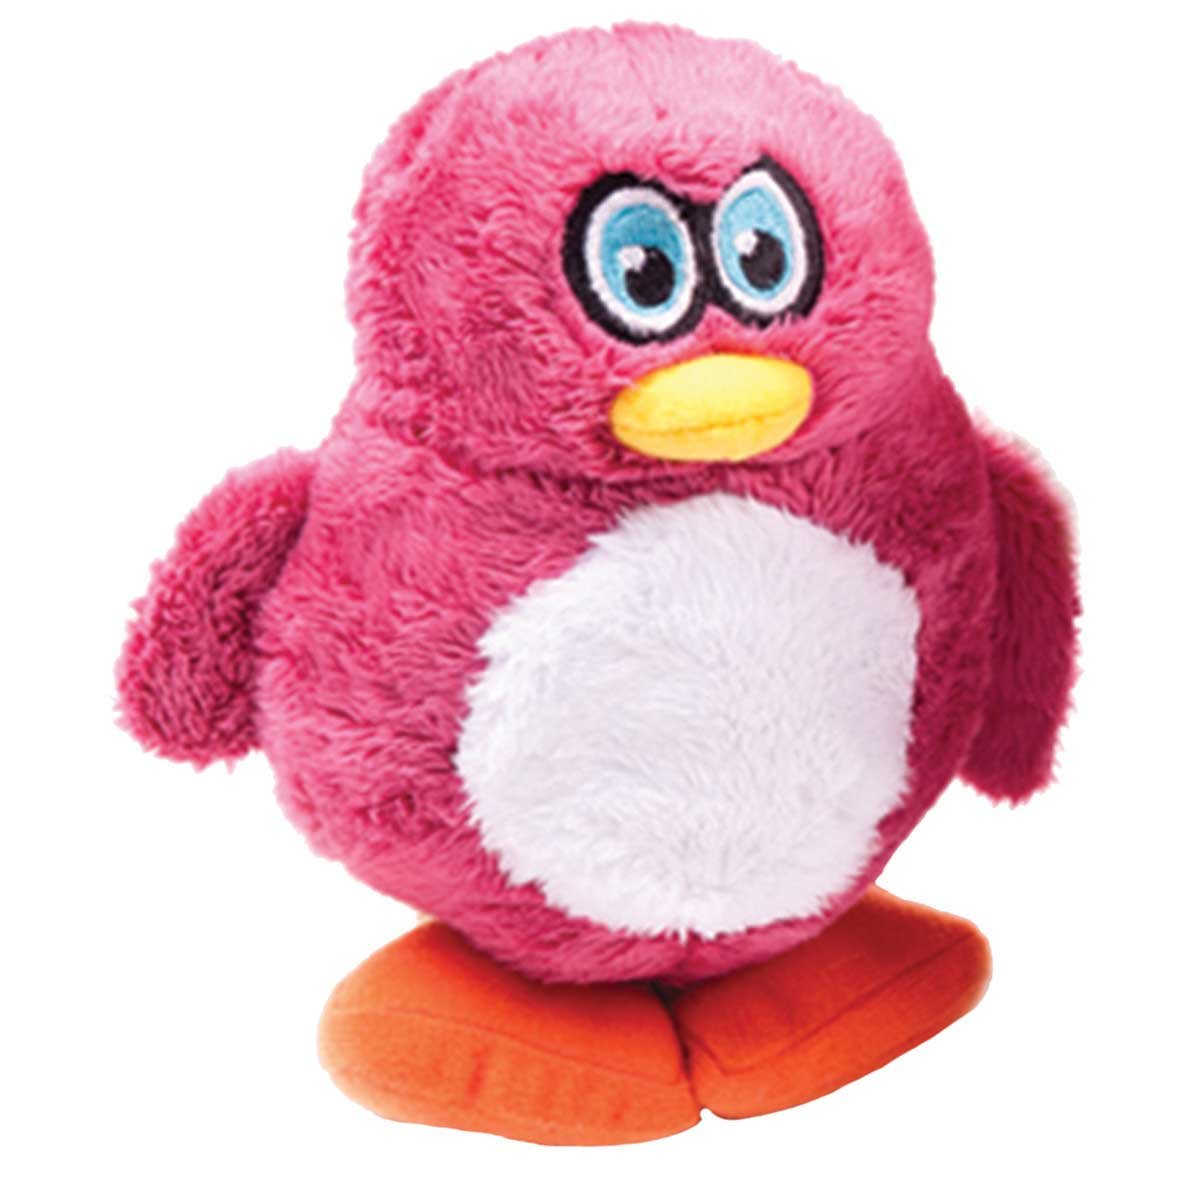 Small 7 inch Hear Doggy Plush Penguin for Dogs